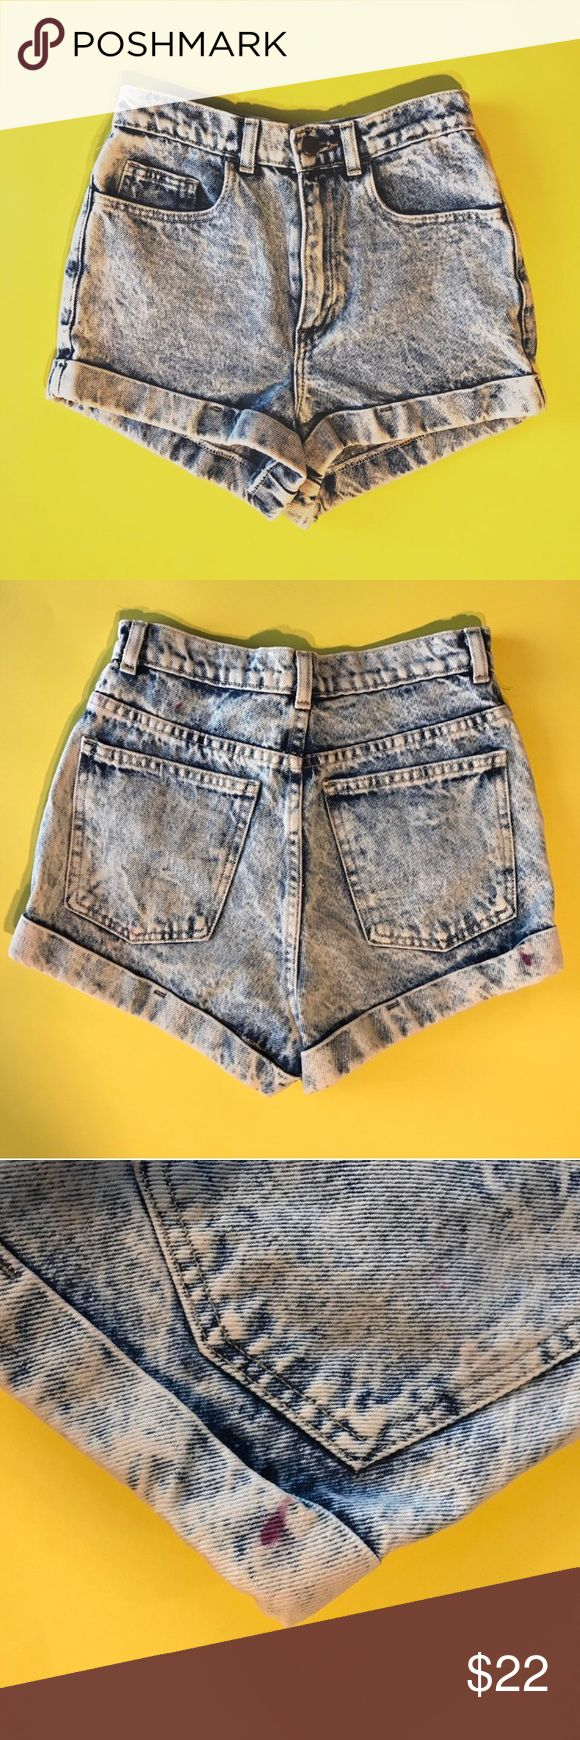 AMERICAN APPAREL HIGH WAISTED ACID WASH SHORTS American Apparel high waisted acid washed shorts 😍 size 25. Has some very small ink marks on the back as seen in the second and third picture American Apparel Shorts Jean Shorts